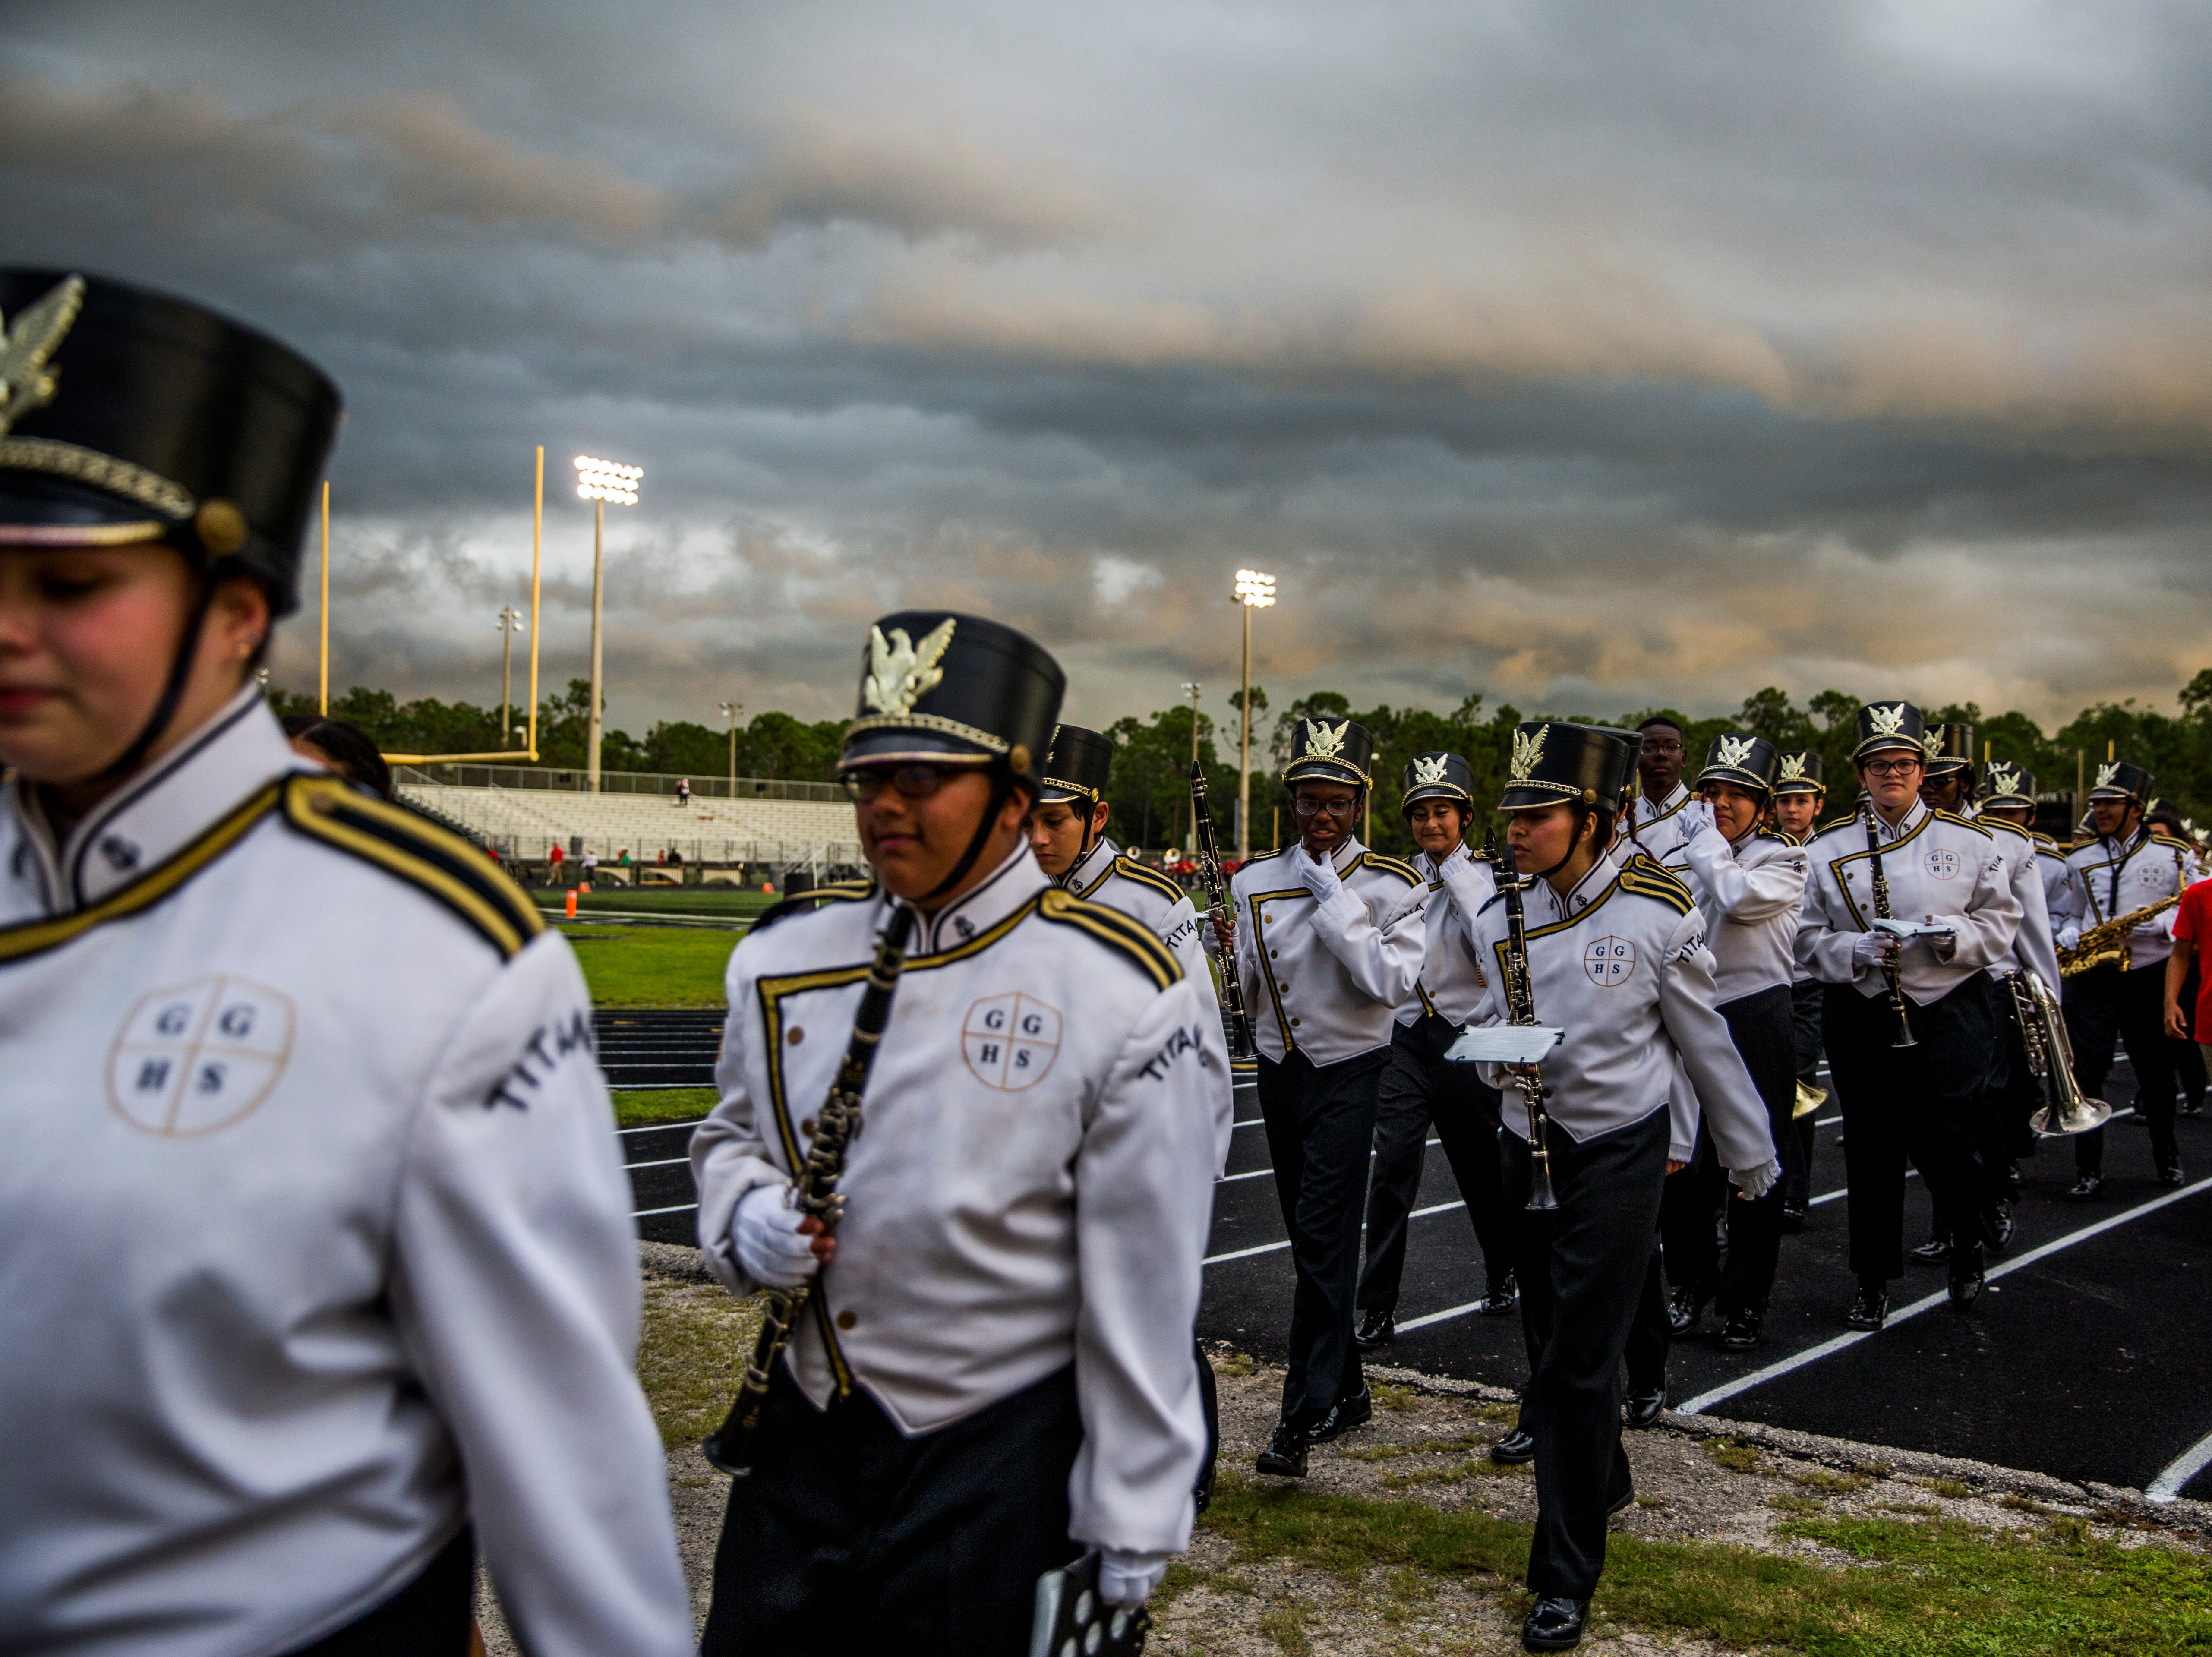 Golden Gate band members leave the field during a lightning delay during the game against Immokalee at Golden Gate High School on Friday, Aug. 24, 2018.